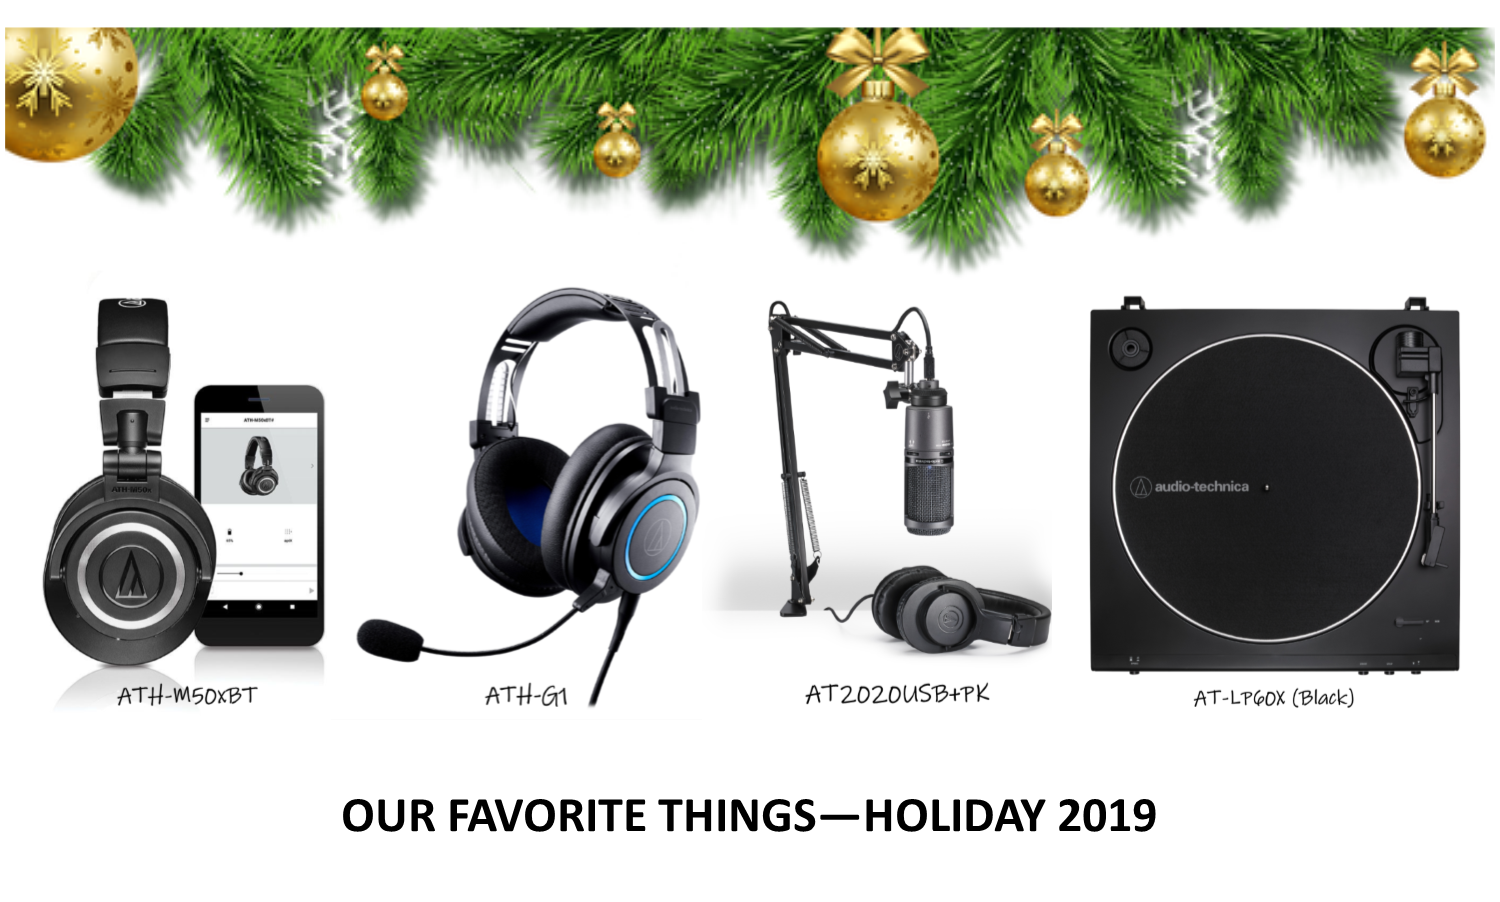 Our Favorite Things - Holiday 2019